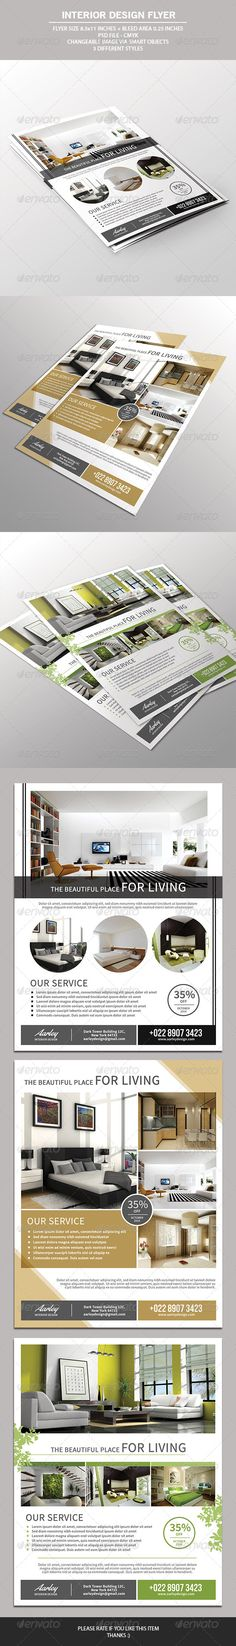 Interior Design Flyer — Photoshop PSD #interior poster #modern • Available here → https://graphicriver.net/item/interior-design-flyer/7520574?ref=pxcr